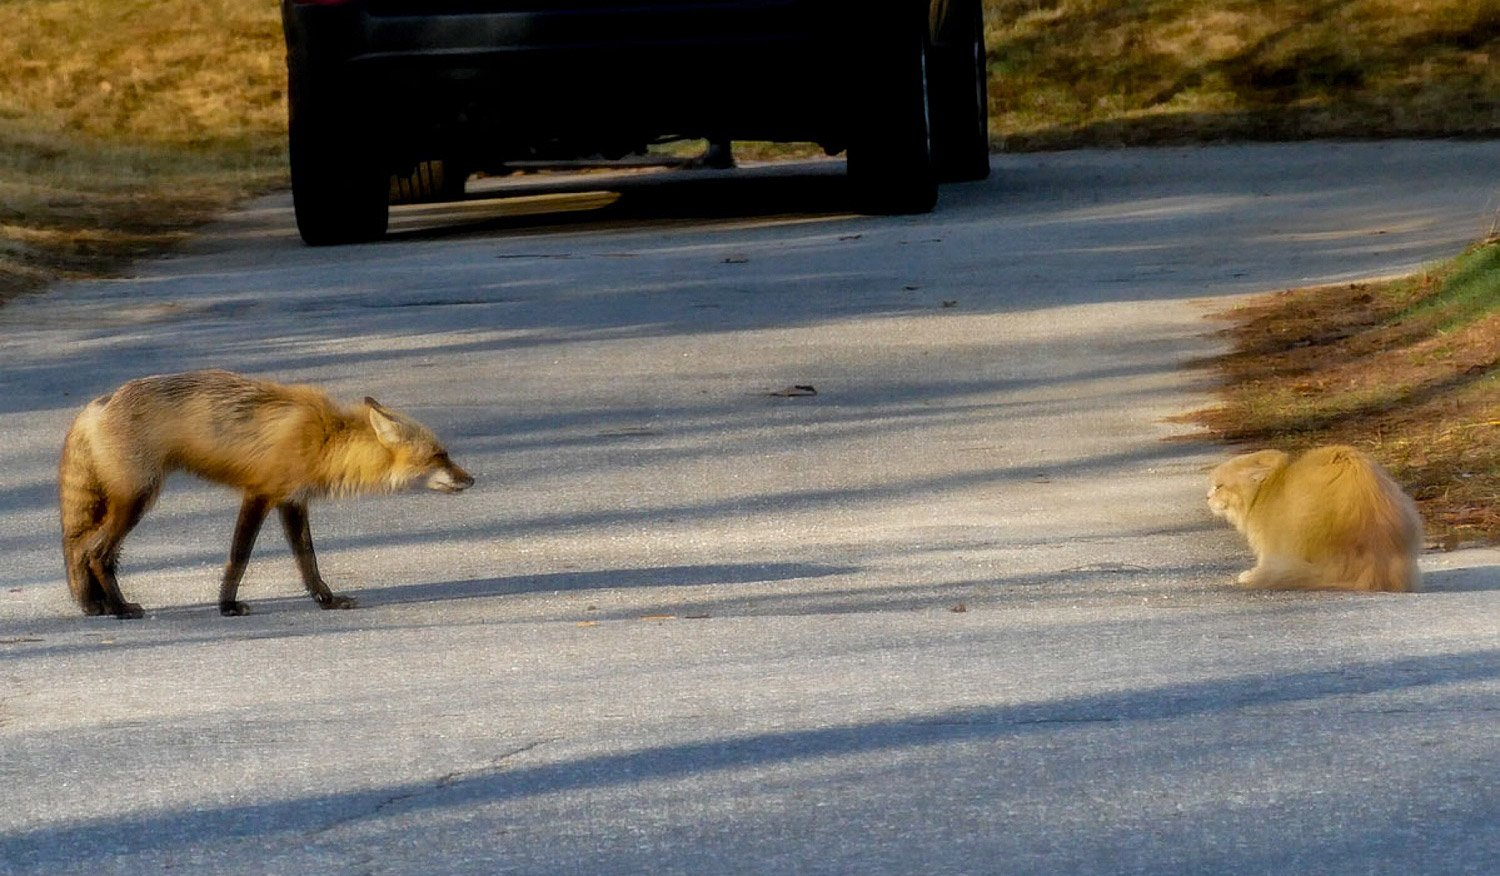 Max Henke of Topsham stumbled upon this staring match between a fox and a neighborhood cat named Buddy. Despite the apparent mismatch, the cat stood its ground, reports Henke, and the fox wandered away.